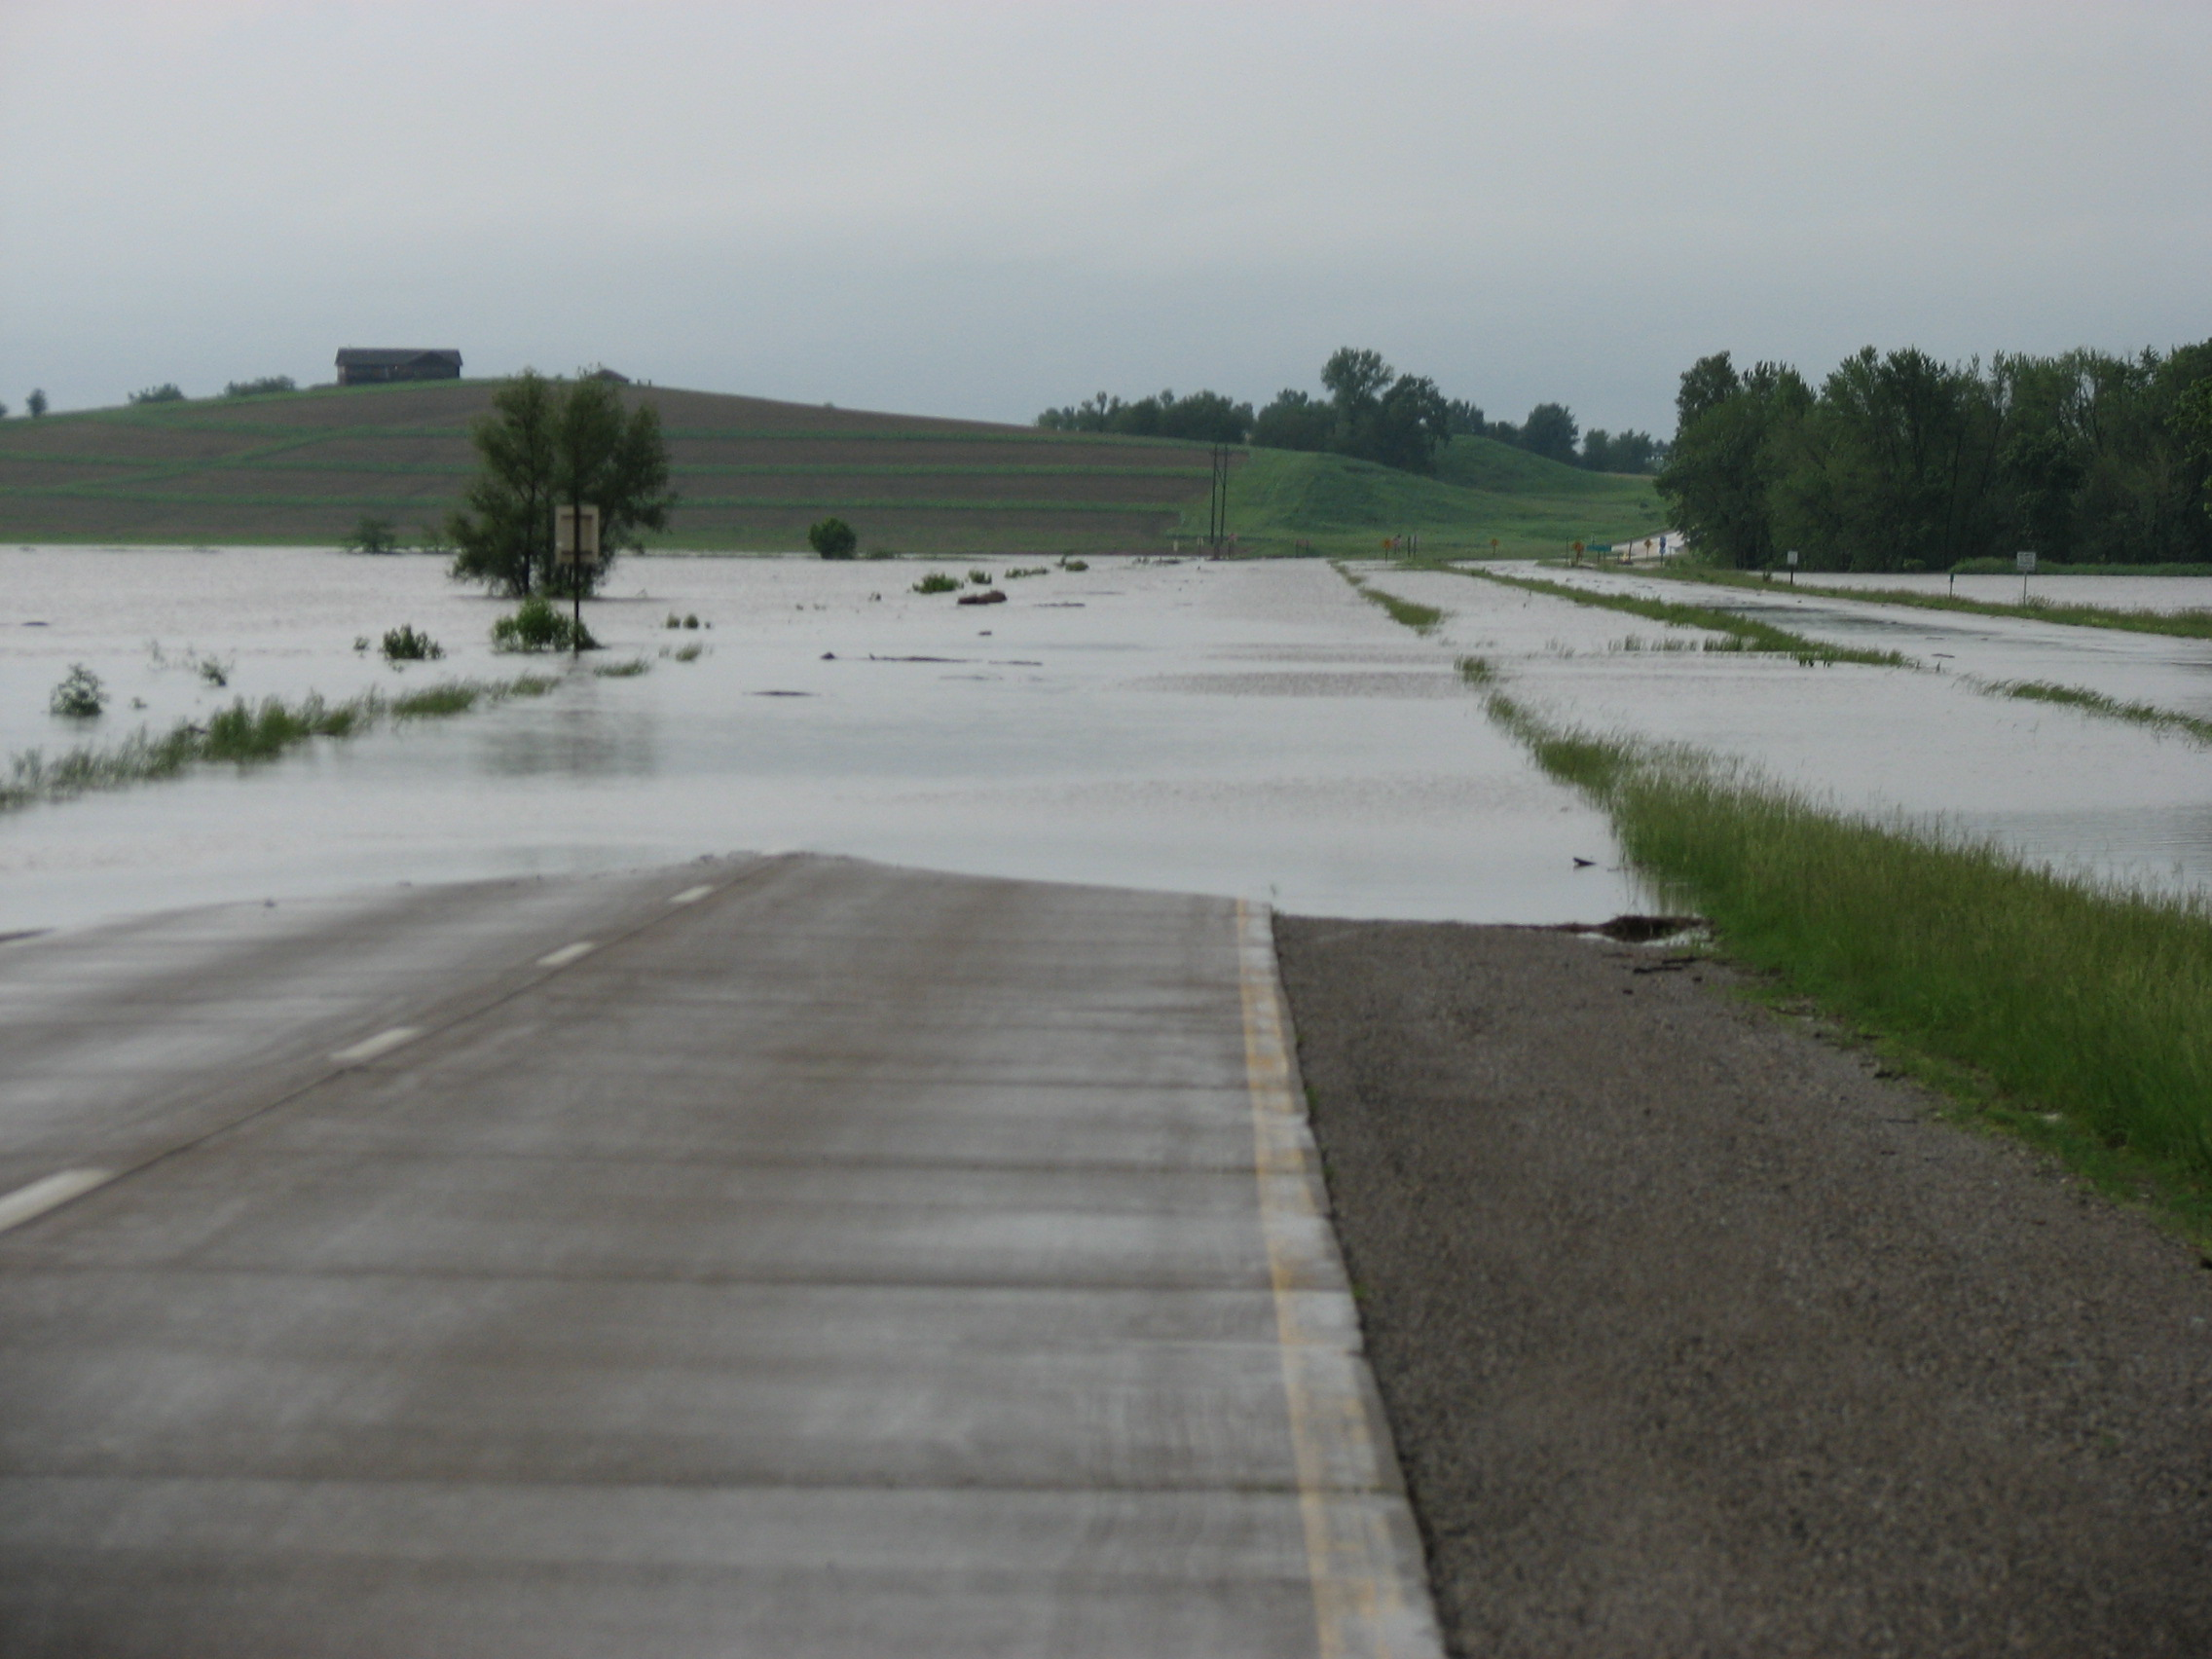 Iowa River on Highway 14 just north of Marshalltown on June 8, 2008 at 6:43 p.m. CDT. Photo by Wayne Fass